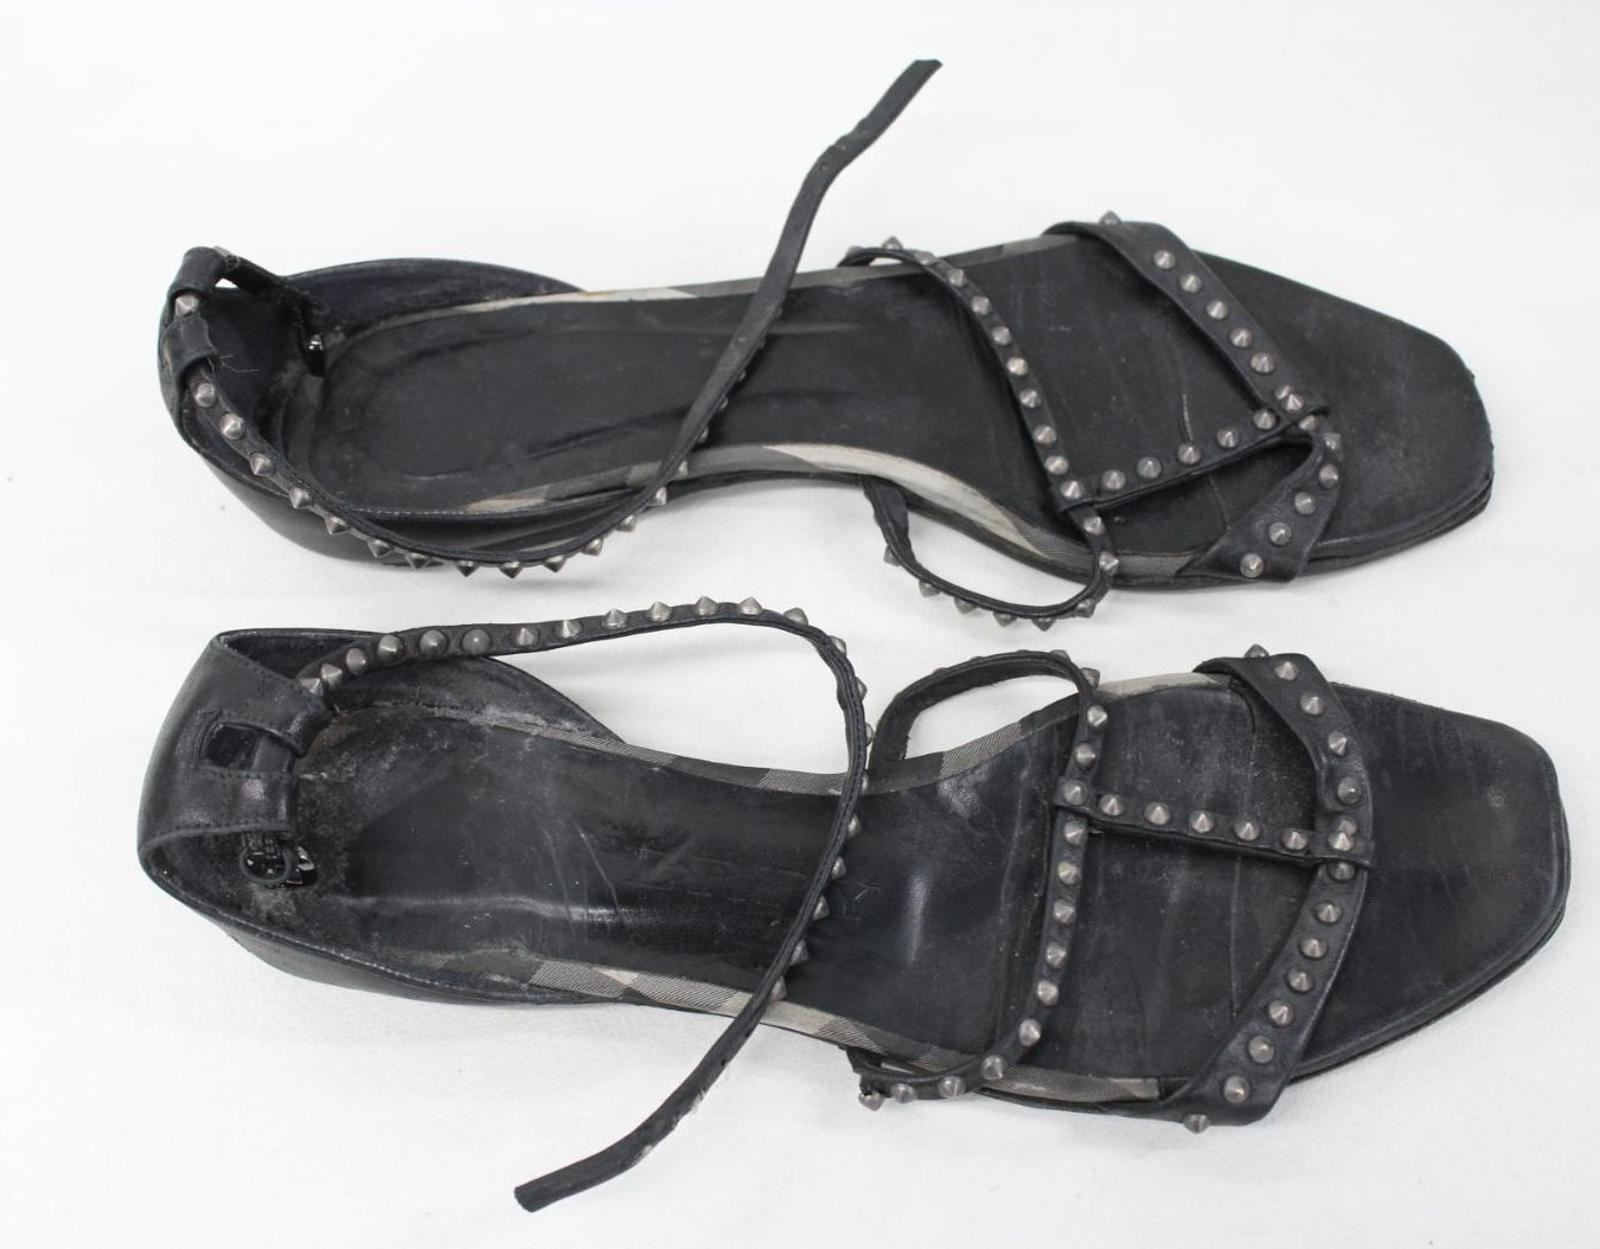 BURBERRY-Ladies-Black-Leather-Studded-Flat-Ankle-Strap-Sandals-EU40-UK7